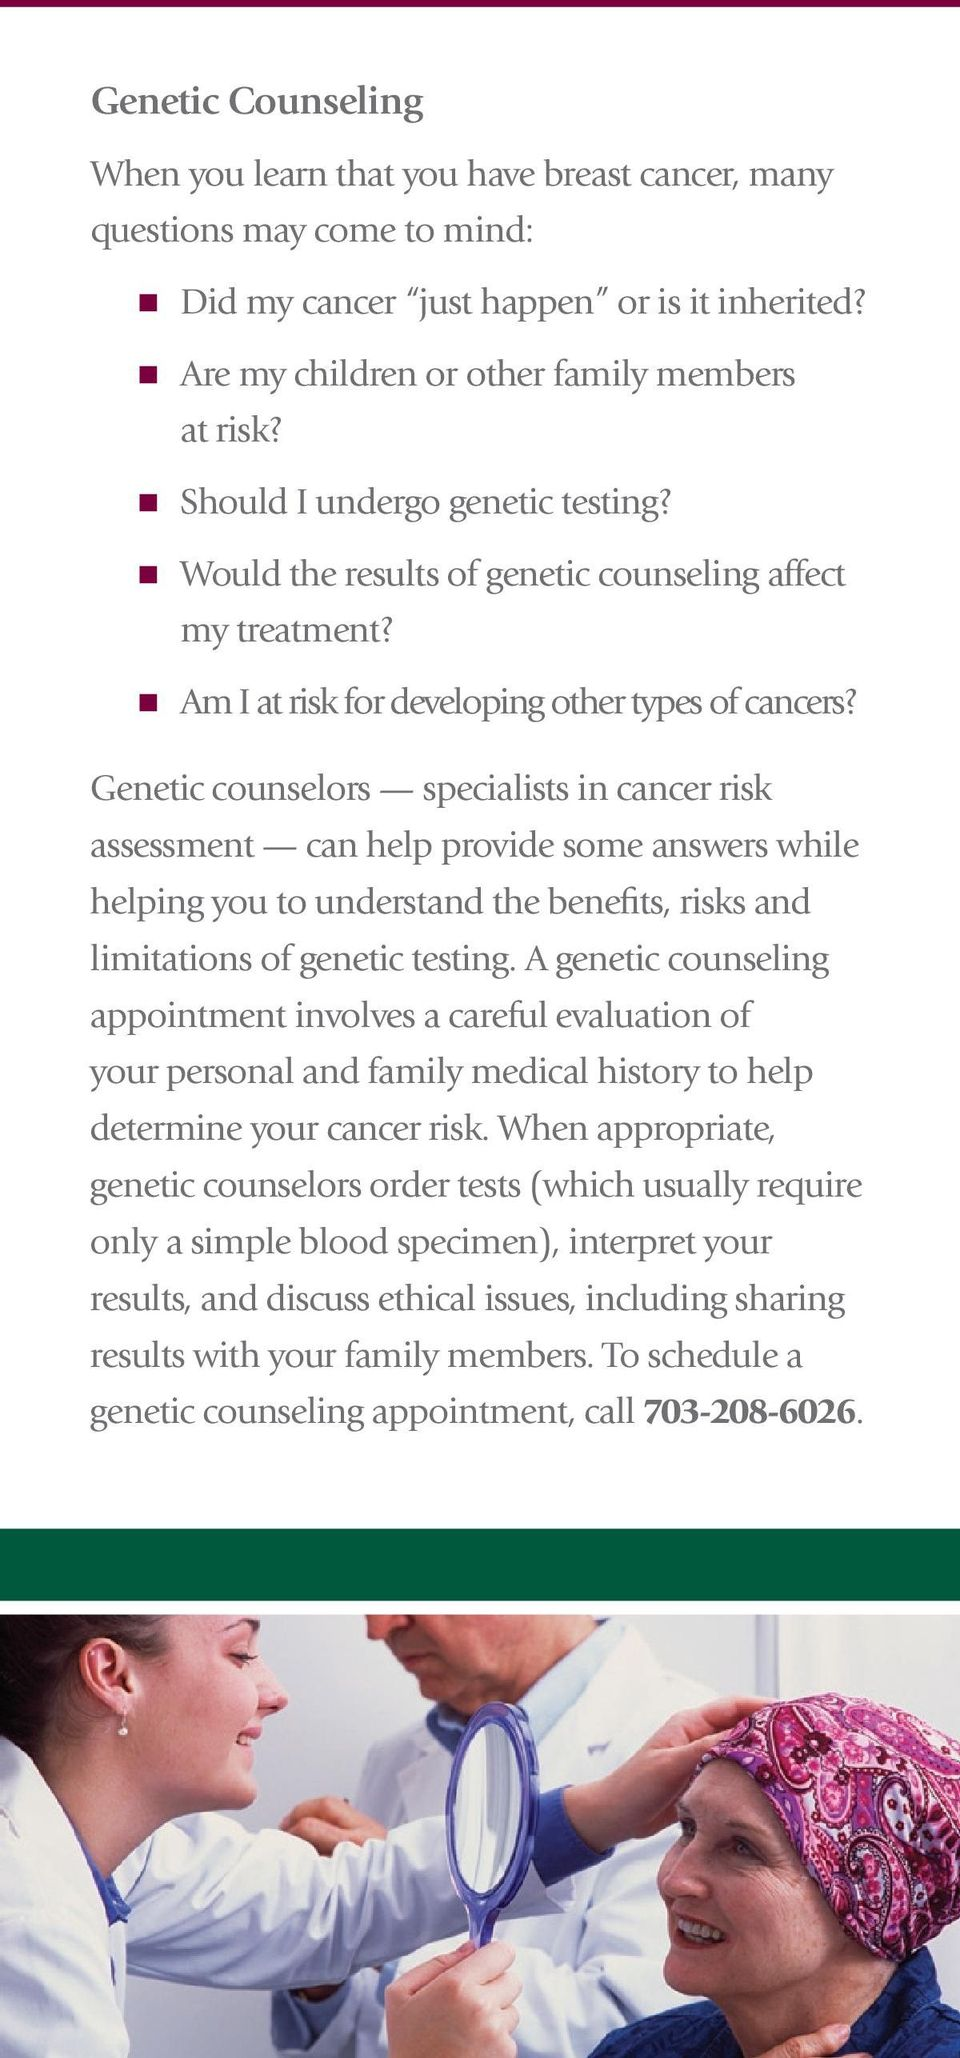 Genetic counselors specialists in cancer risk assessment can help provide some answers while helping you to understand the benefits, risks and limitations of genetic testing.